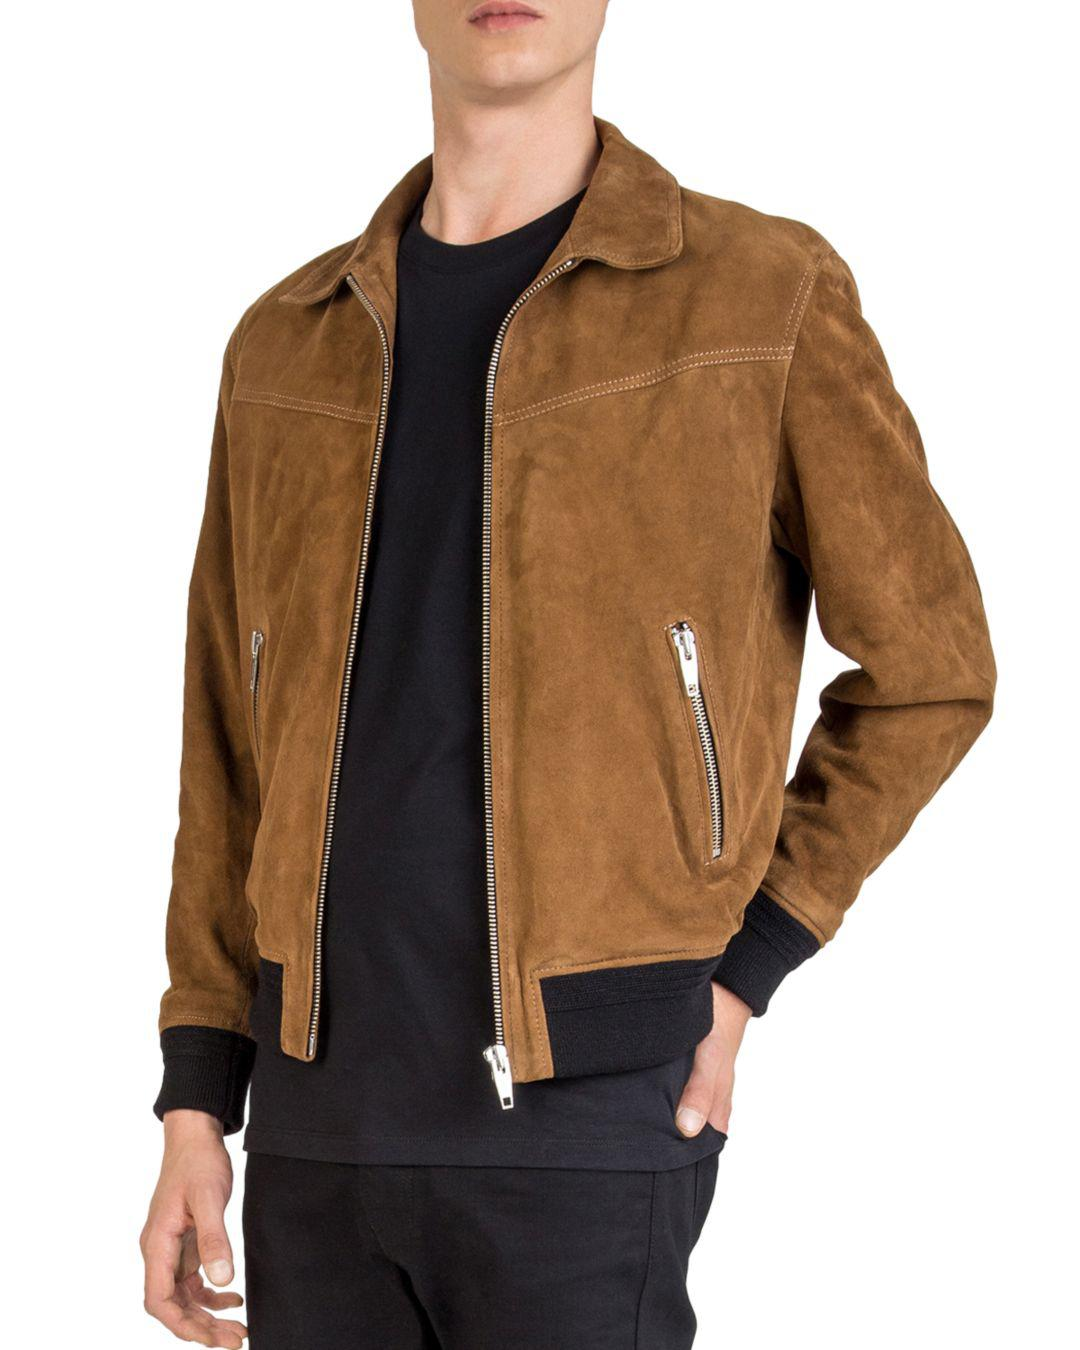 8799e7cd5a0 The Kooples Suede Leather Jacket in Brown for Men - Lyst